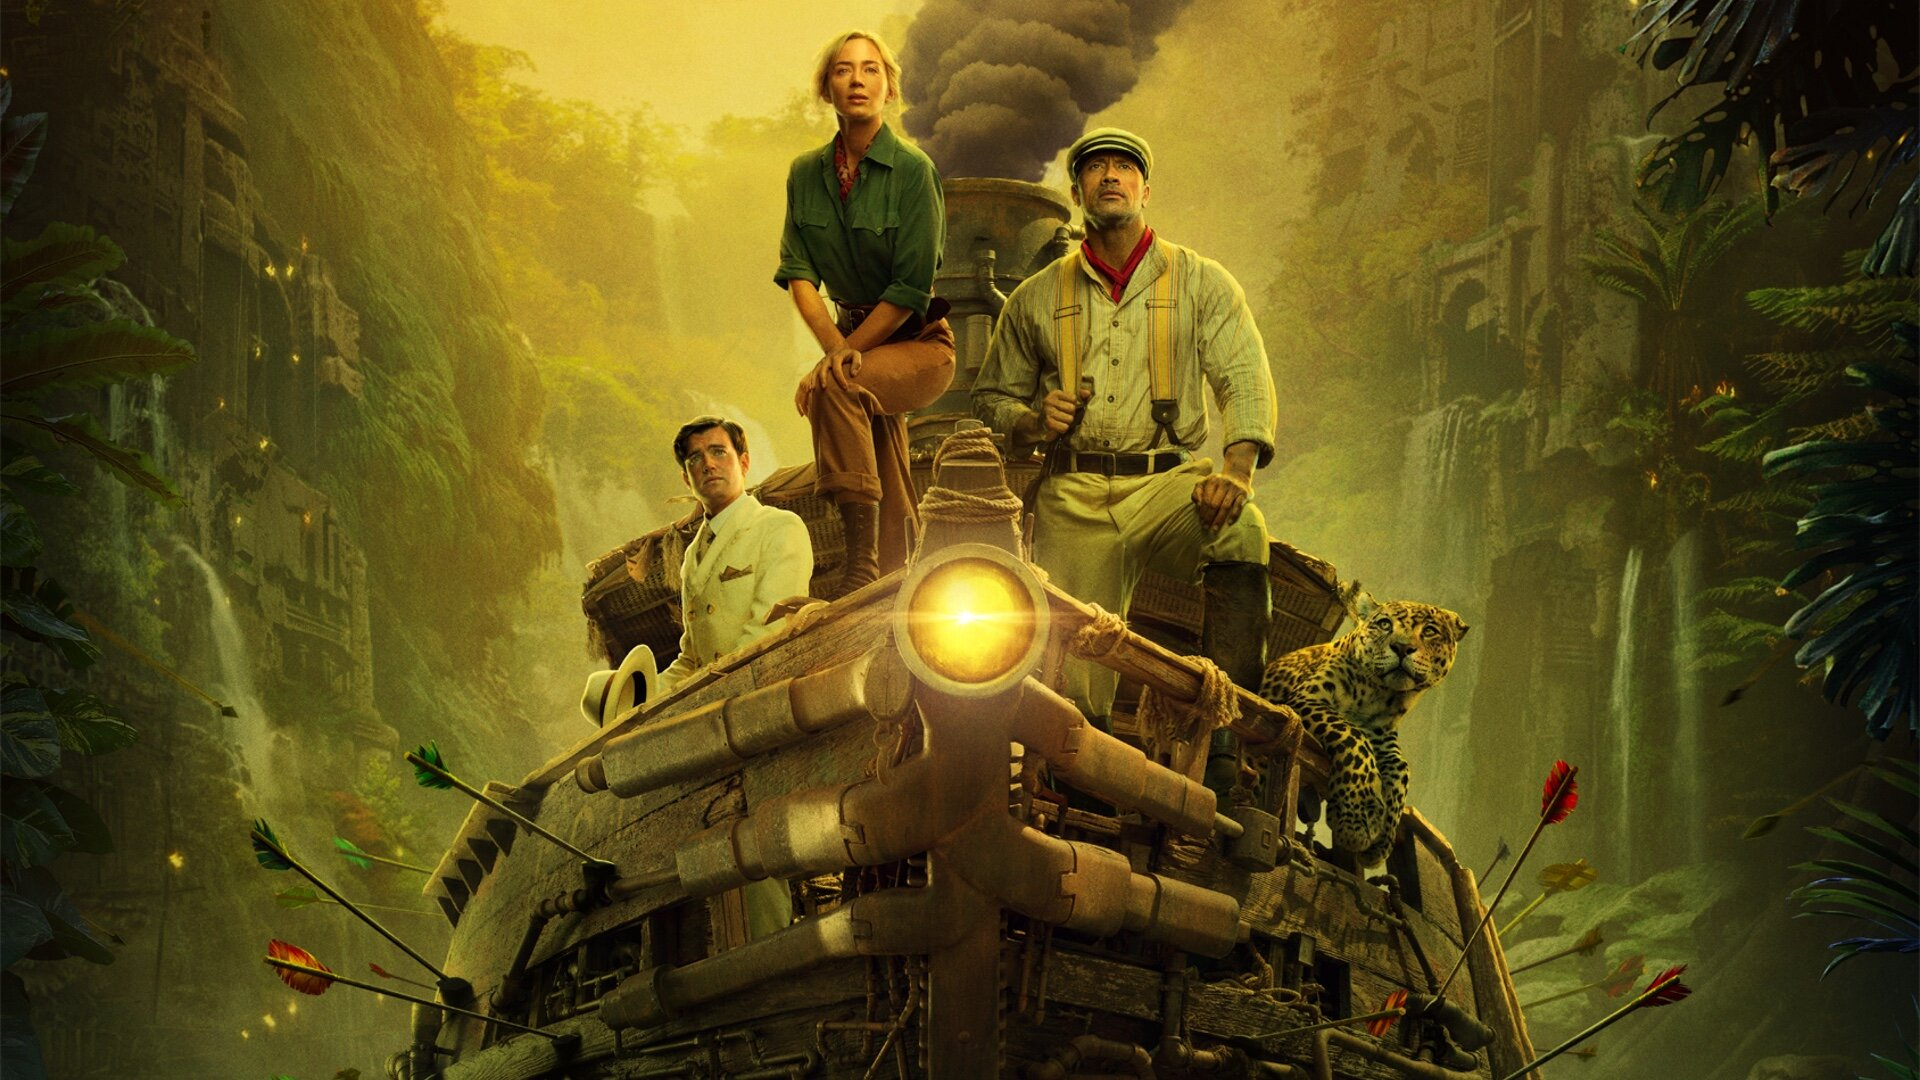 adventurous-first-trailer-for-disneys-jungle-cruise-with-dwayne-johnson-and-emily-blunt-social.jpg